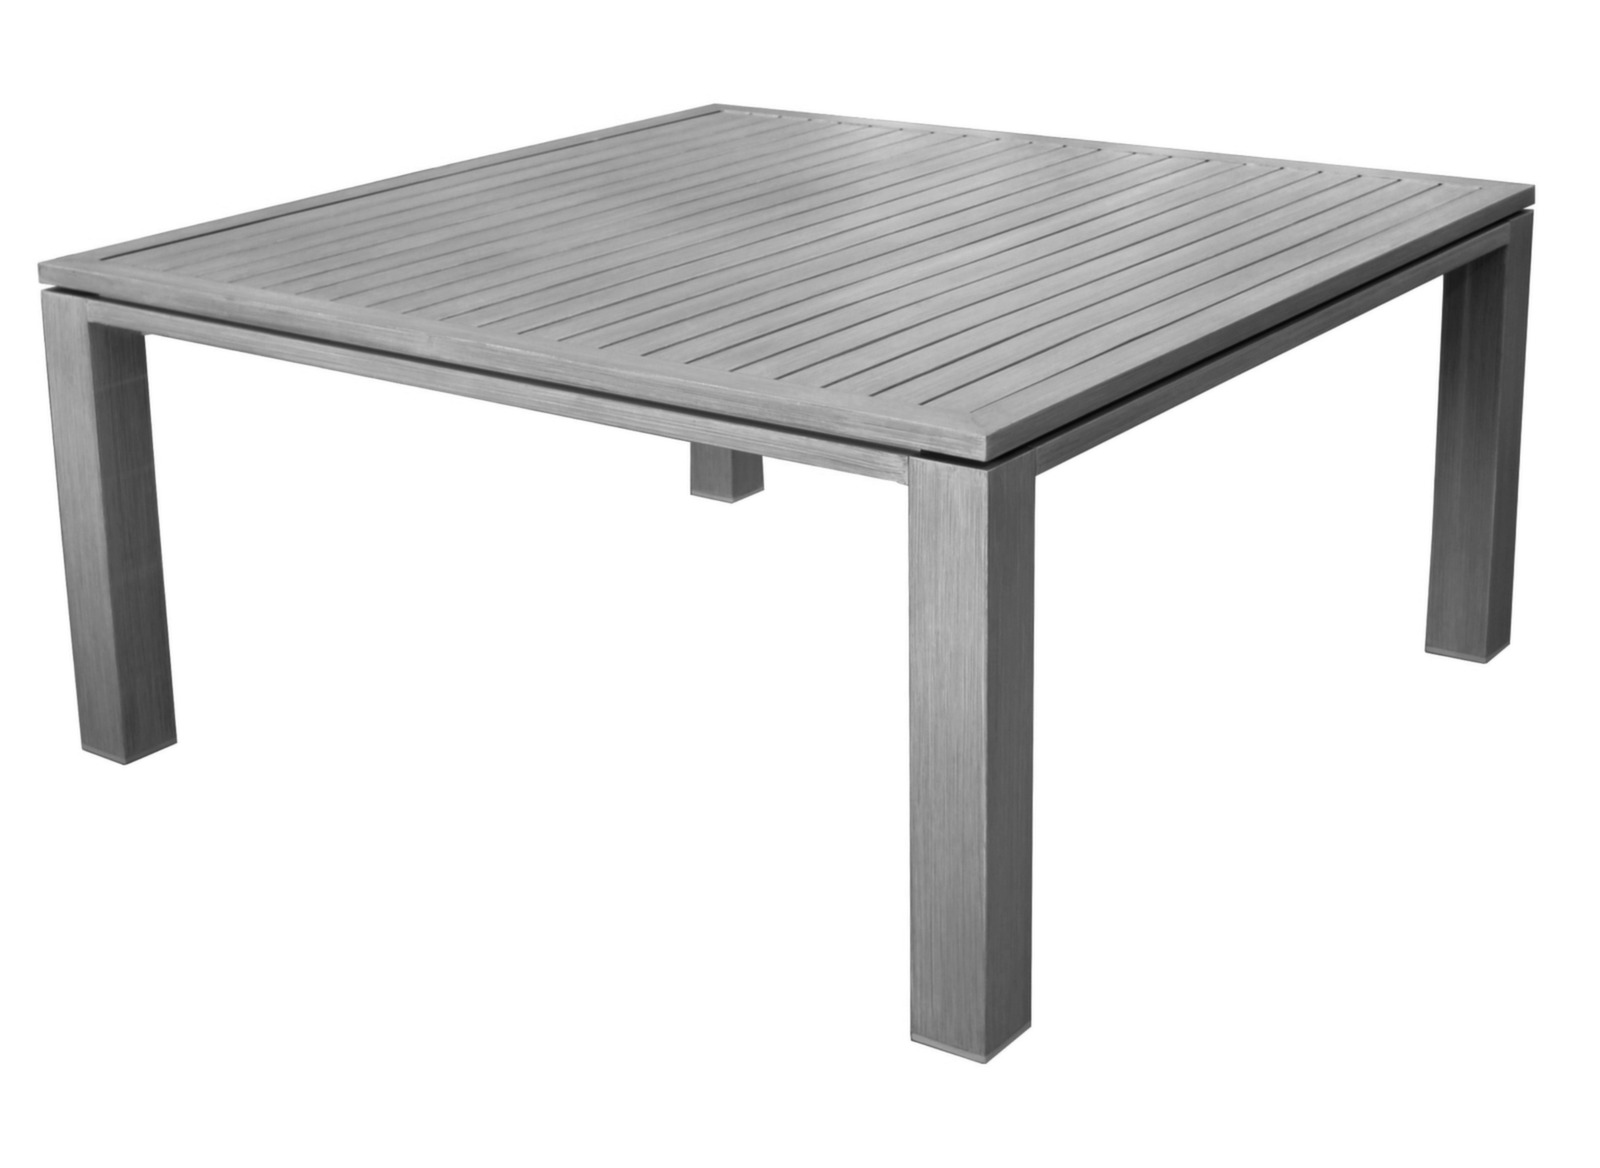 Table de jardin design carr e fiero 160cm proloisirs - Salon de jardin table carree avignon ...